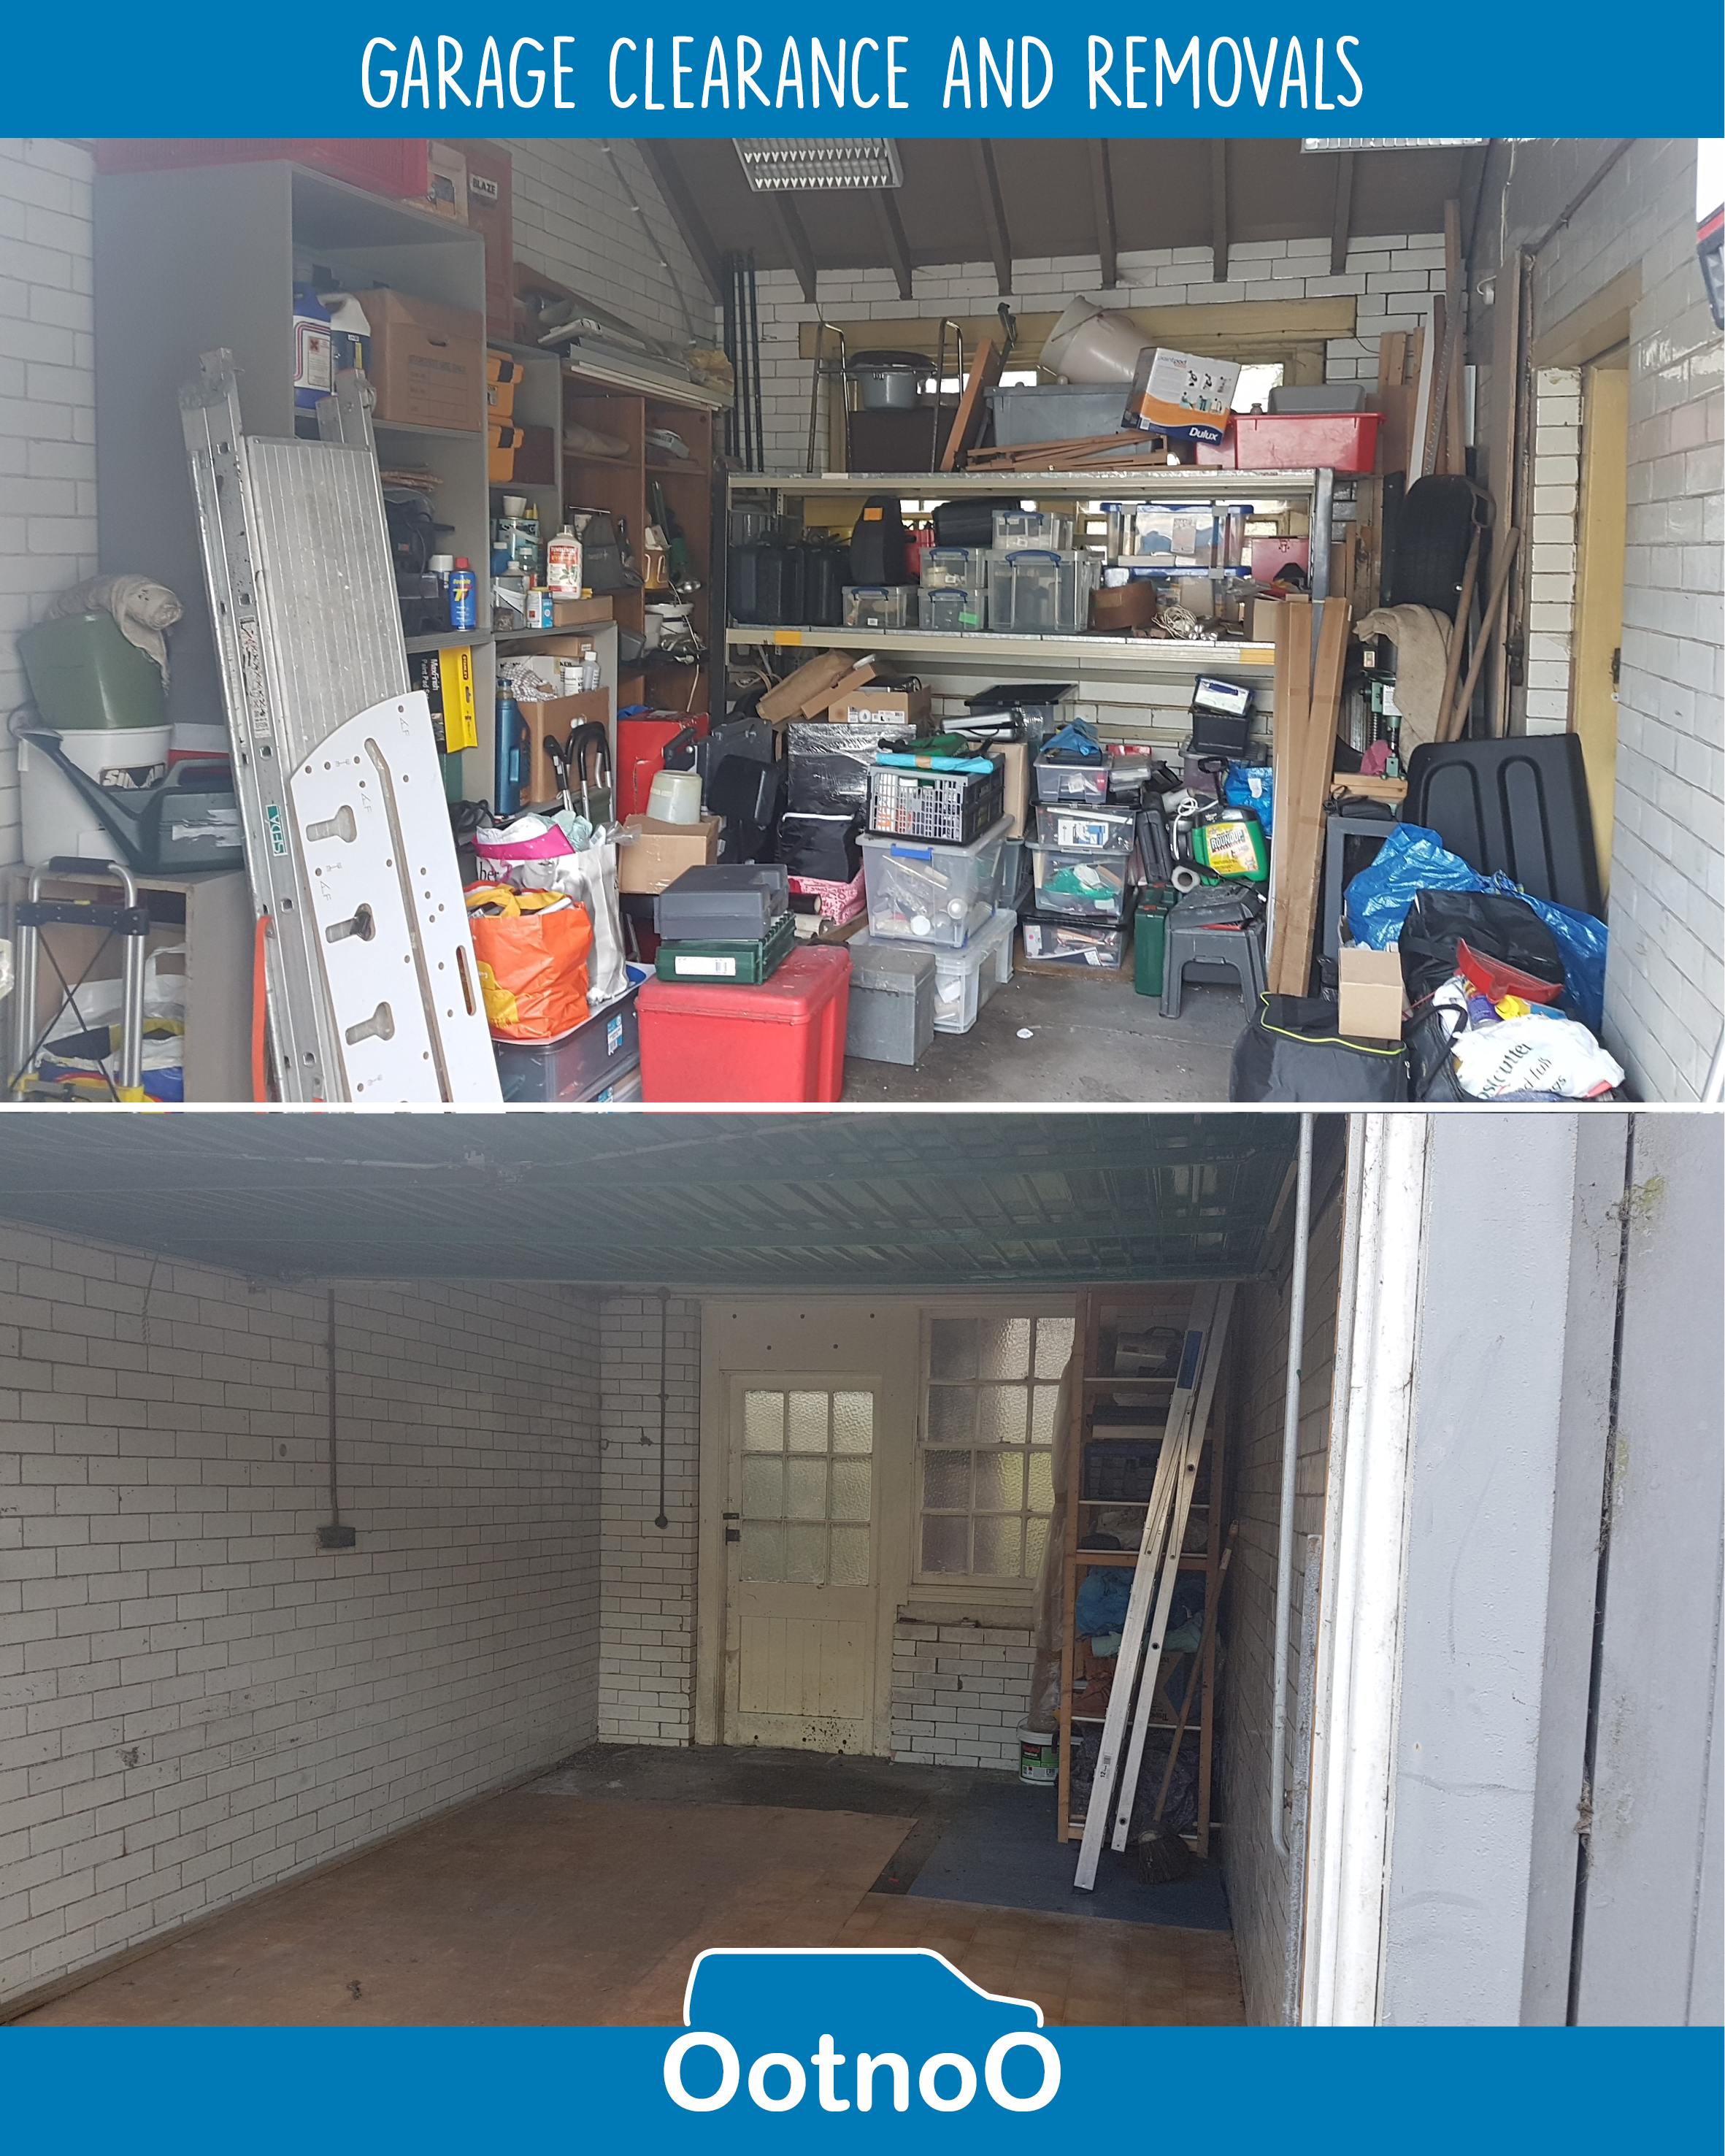 Garage clearance Edinburgh